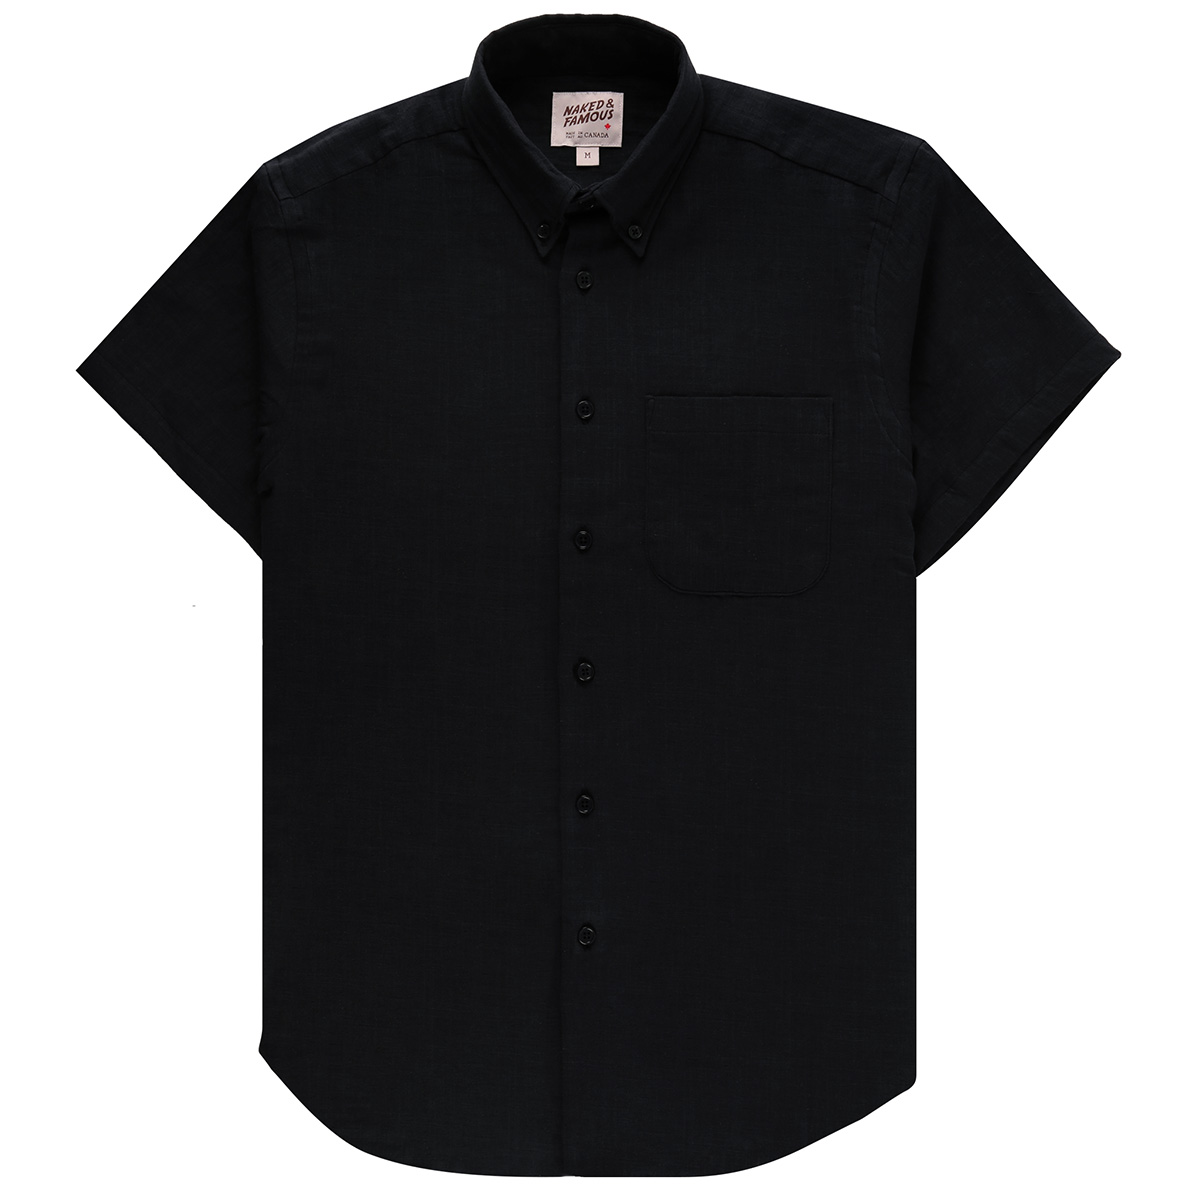 DOUBLE WEAVE GAUZE SLUB - BLACK - Short Sleeve Easy Shirt